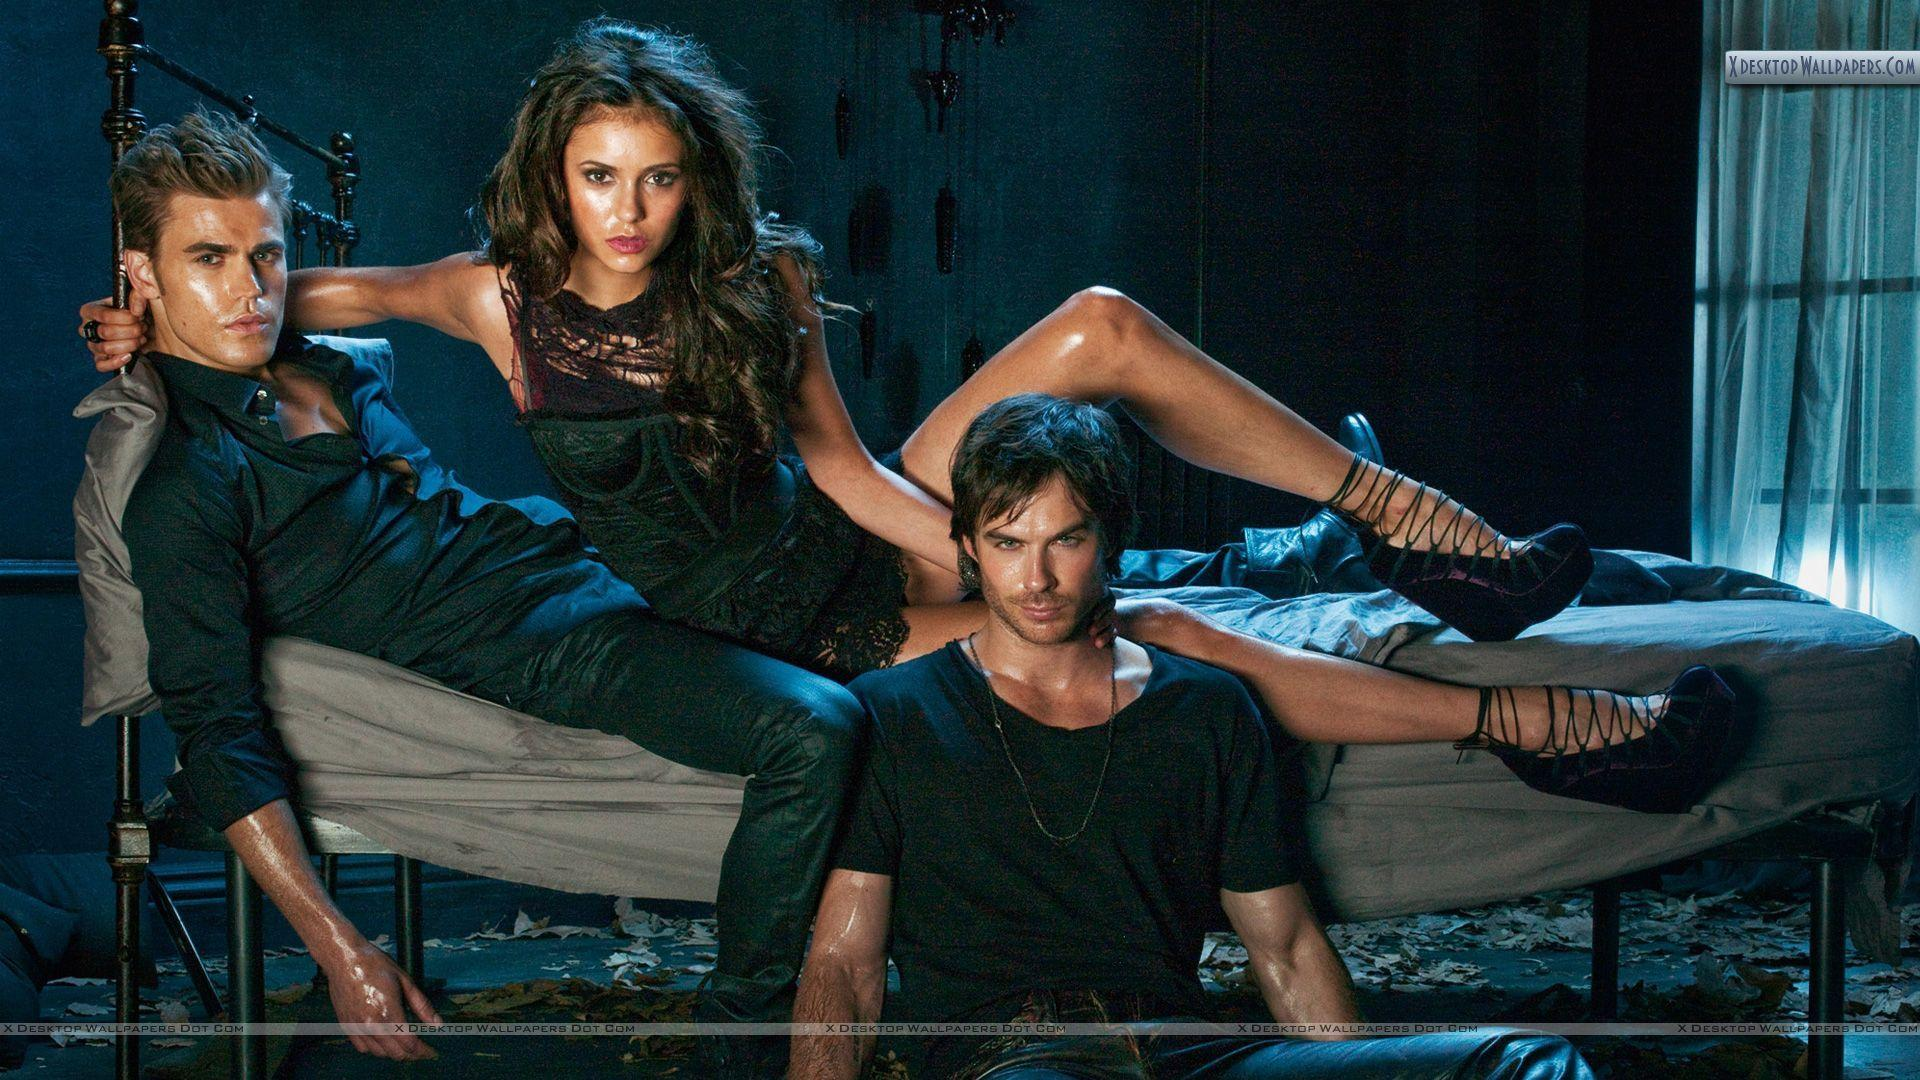 The Vampire Diaries Wallpapers, Photos & Image in HD